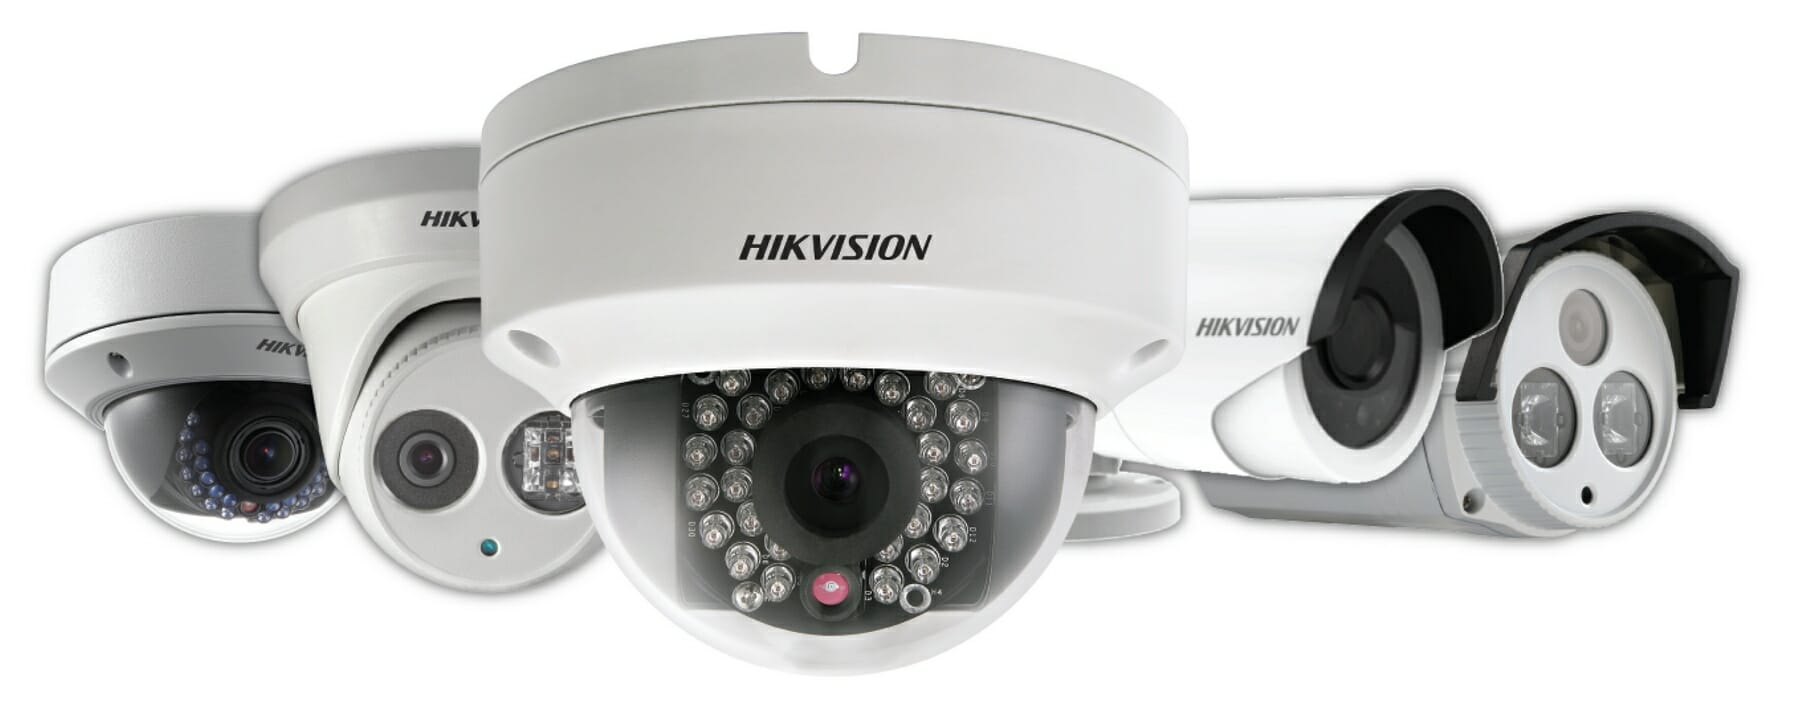 Read about Hikvision CCTV Camera Systems Specifications